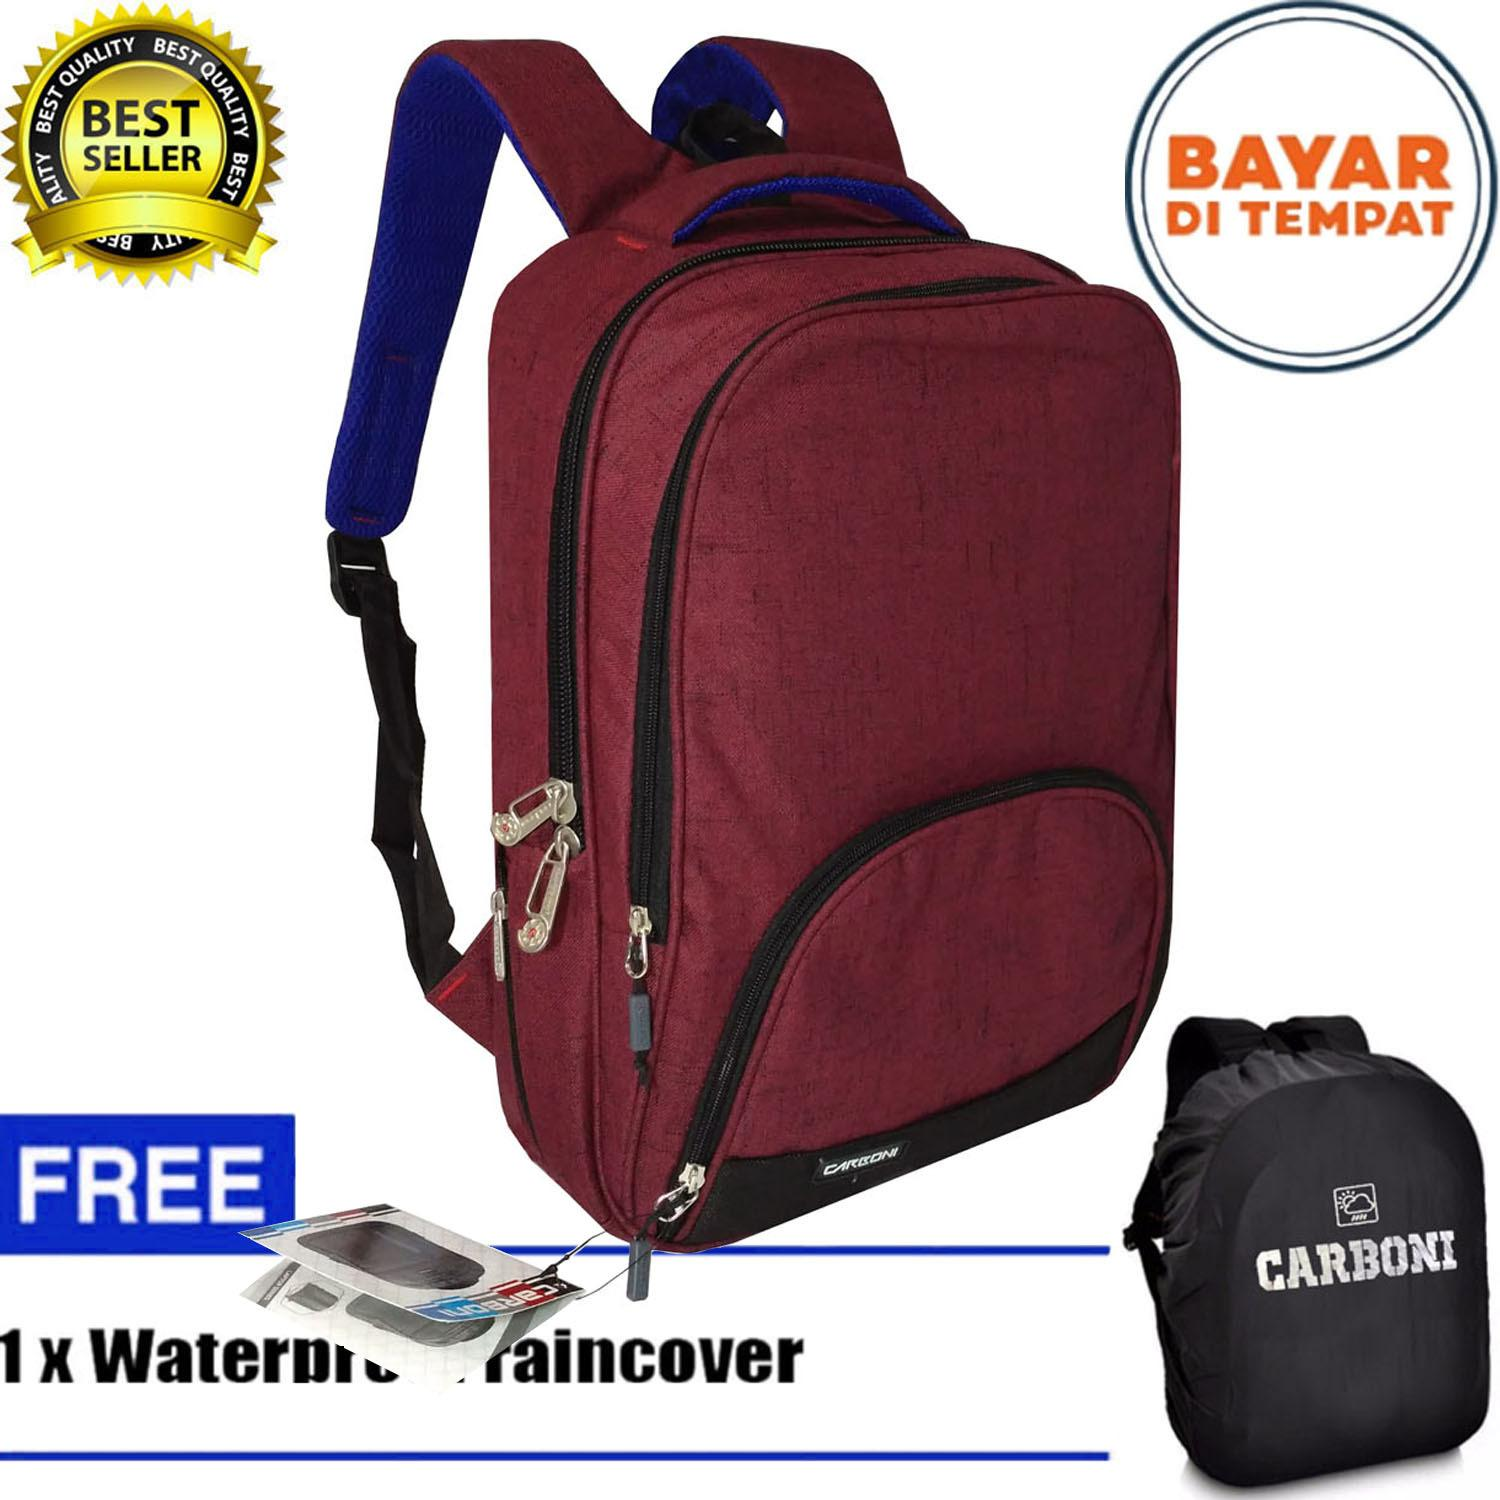 Carboni Tas Ransel Pria 17 Inchi RA 17 Polyester Nylon Waterproof Red Raincover